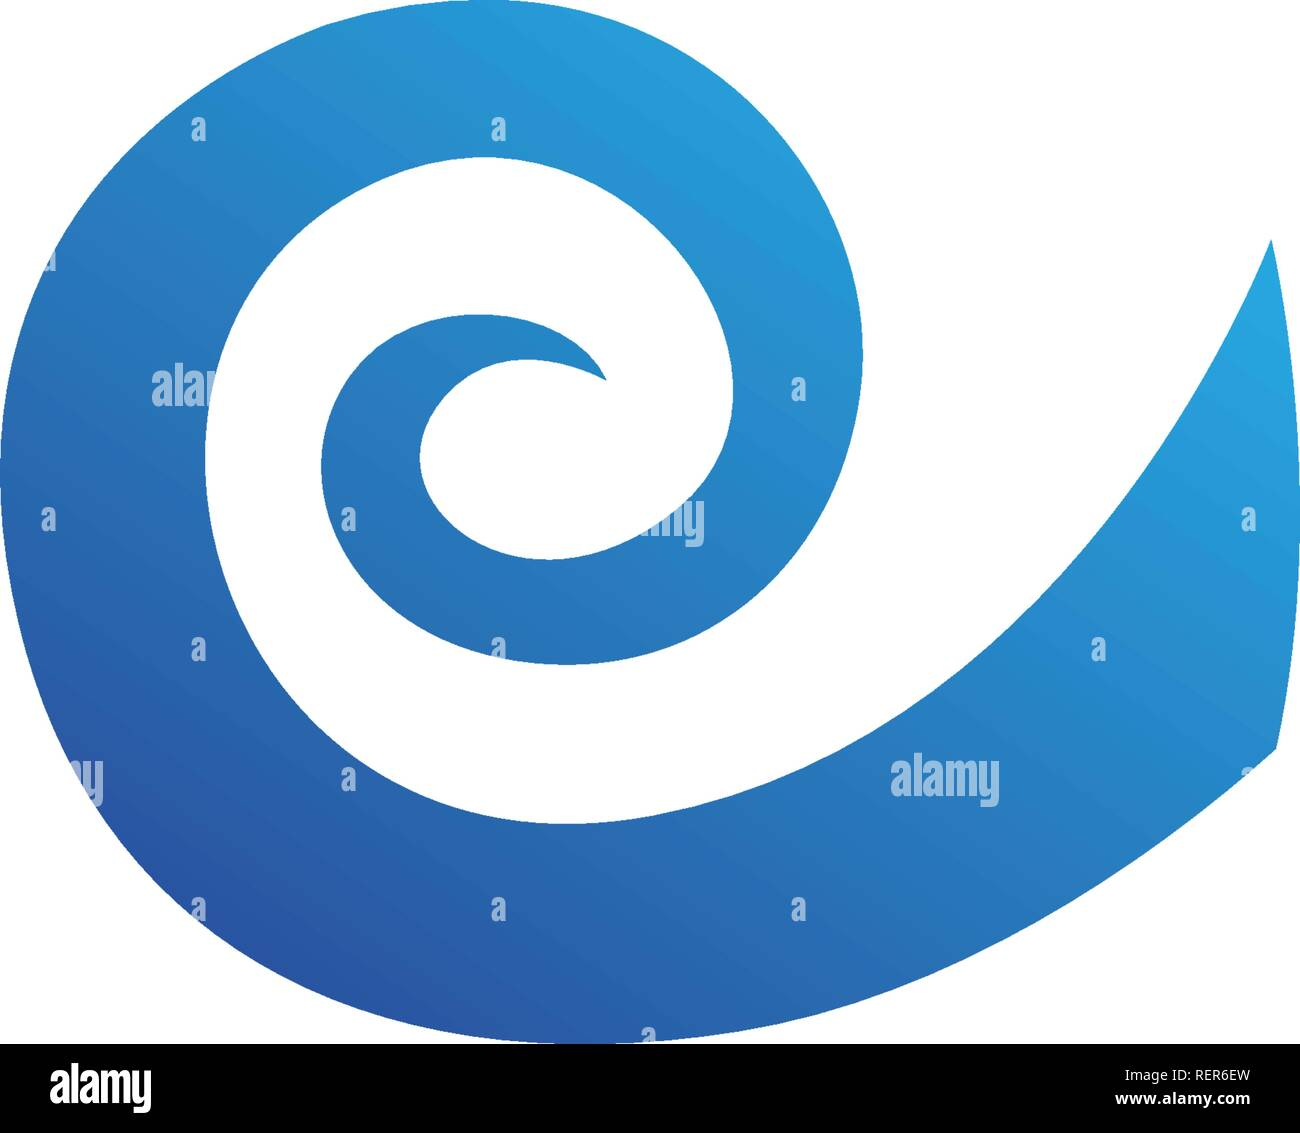 Waves beach logo and symbols template icons app - Stock Image